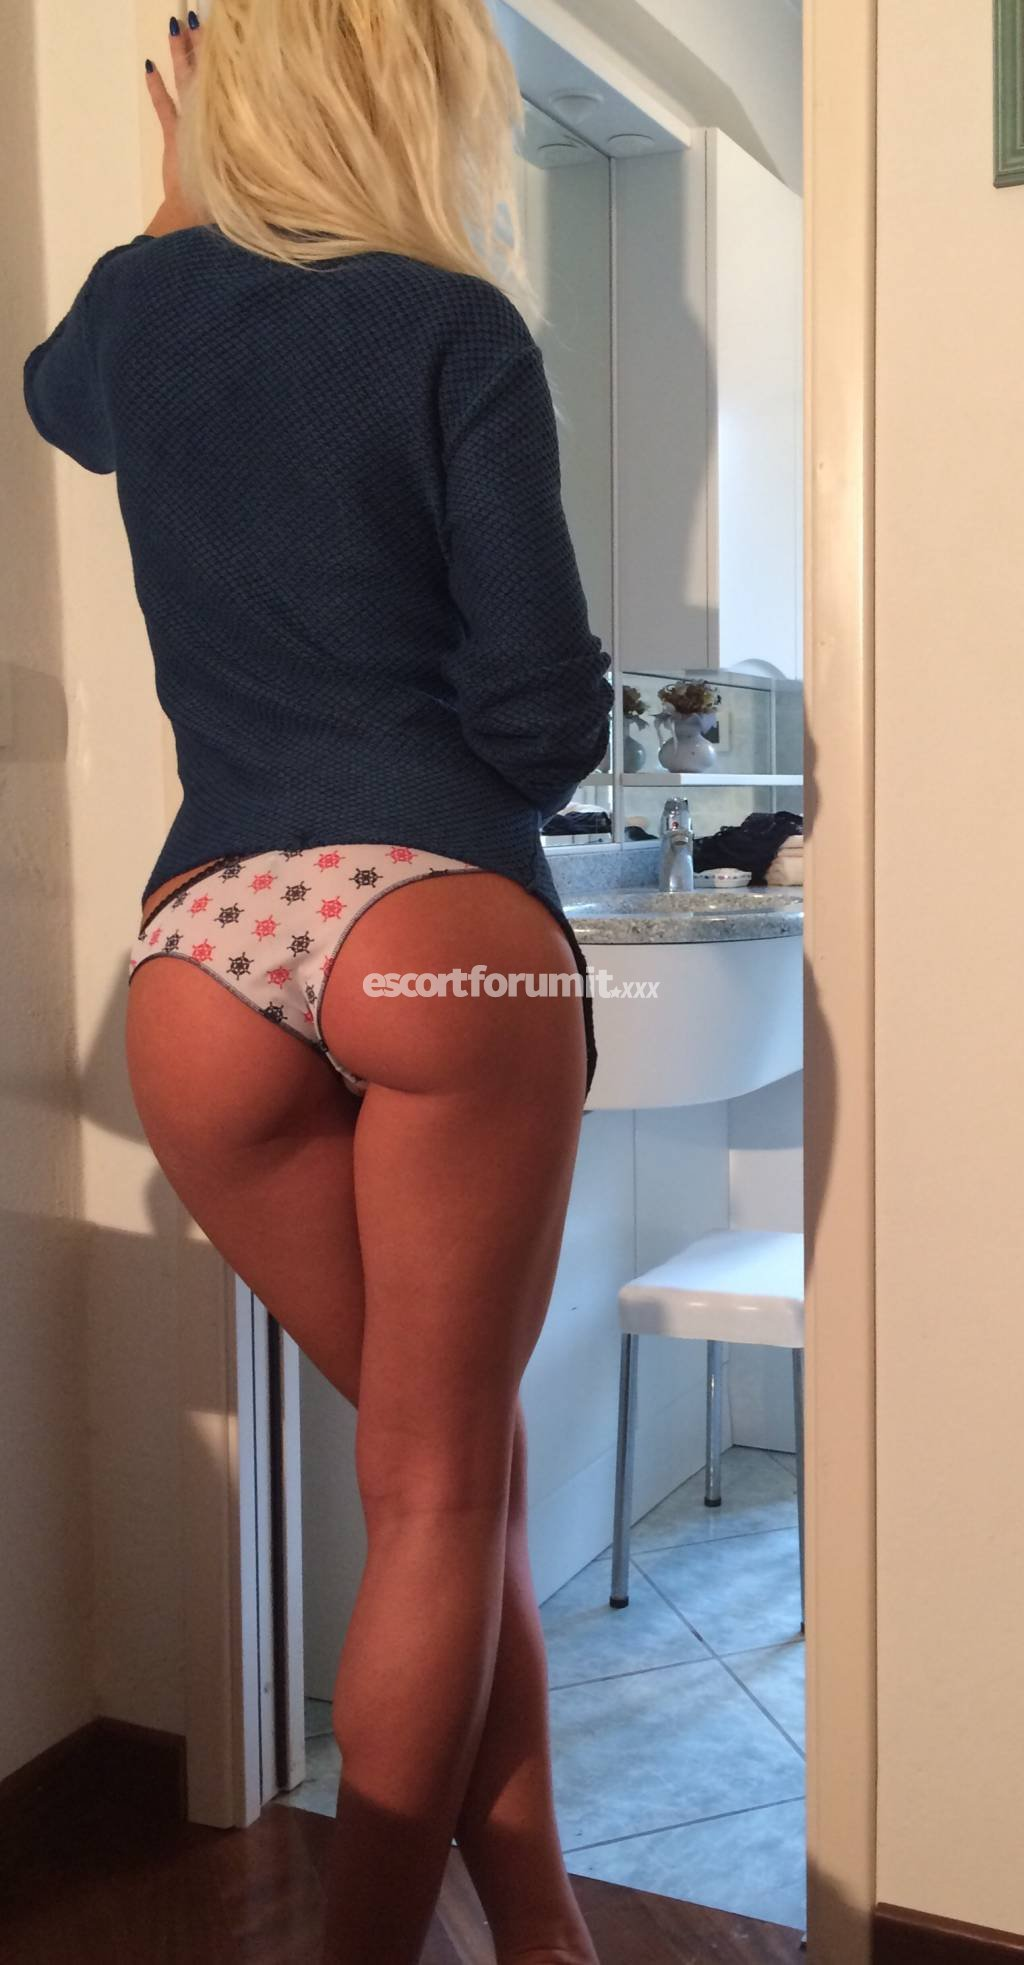 escortforum trento trento escort